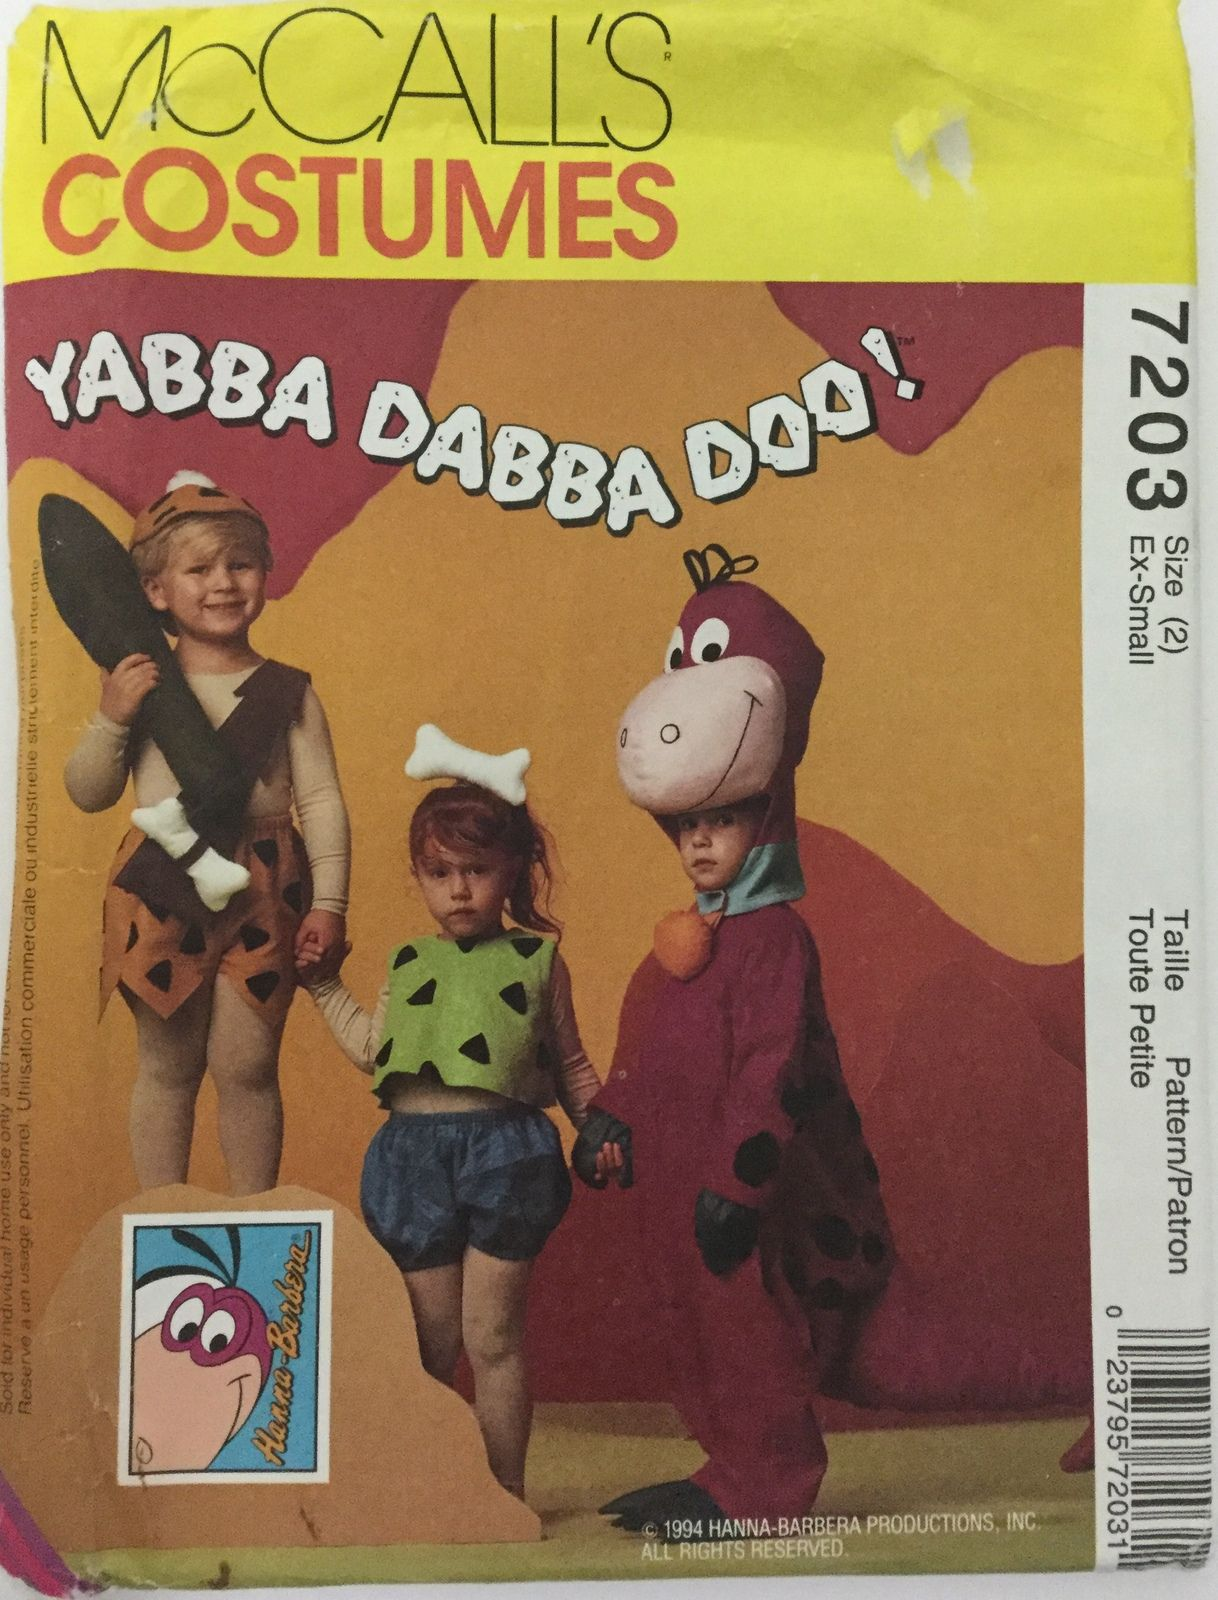 small-Medium-Large-Extra Large Size MISS M6376 Misses//Childrens//Girls Costumes